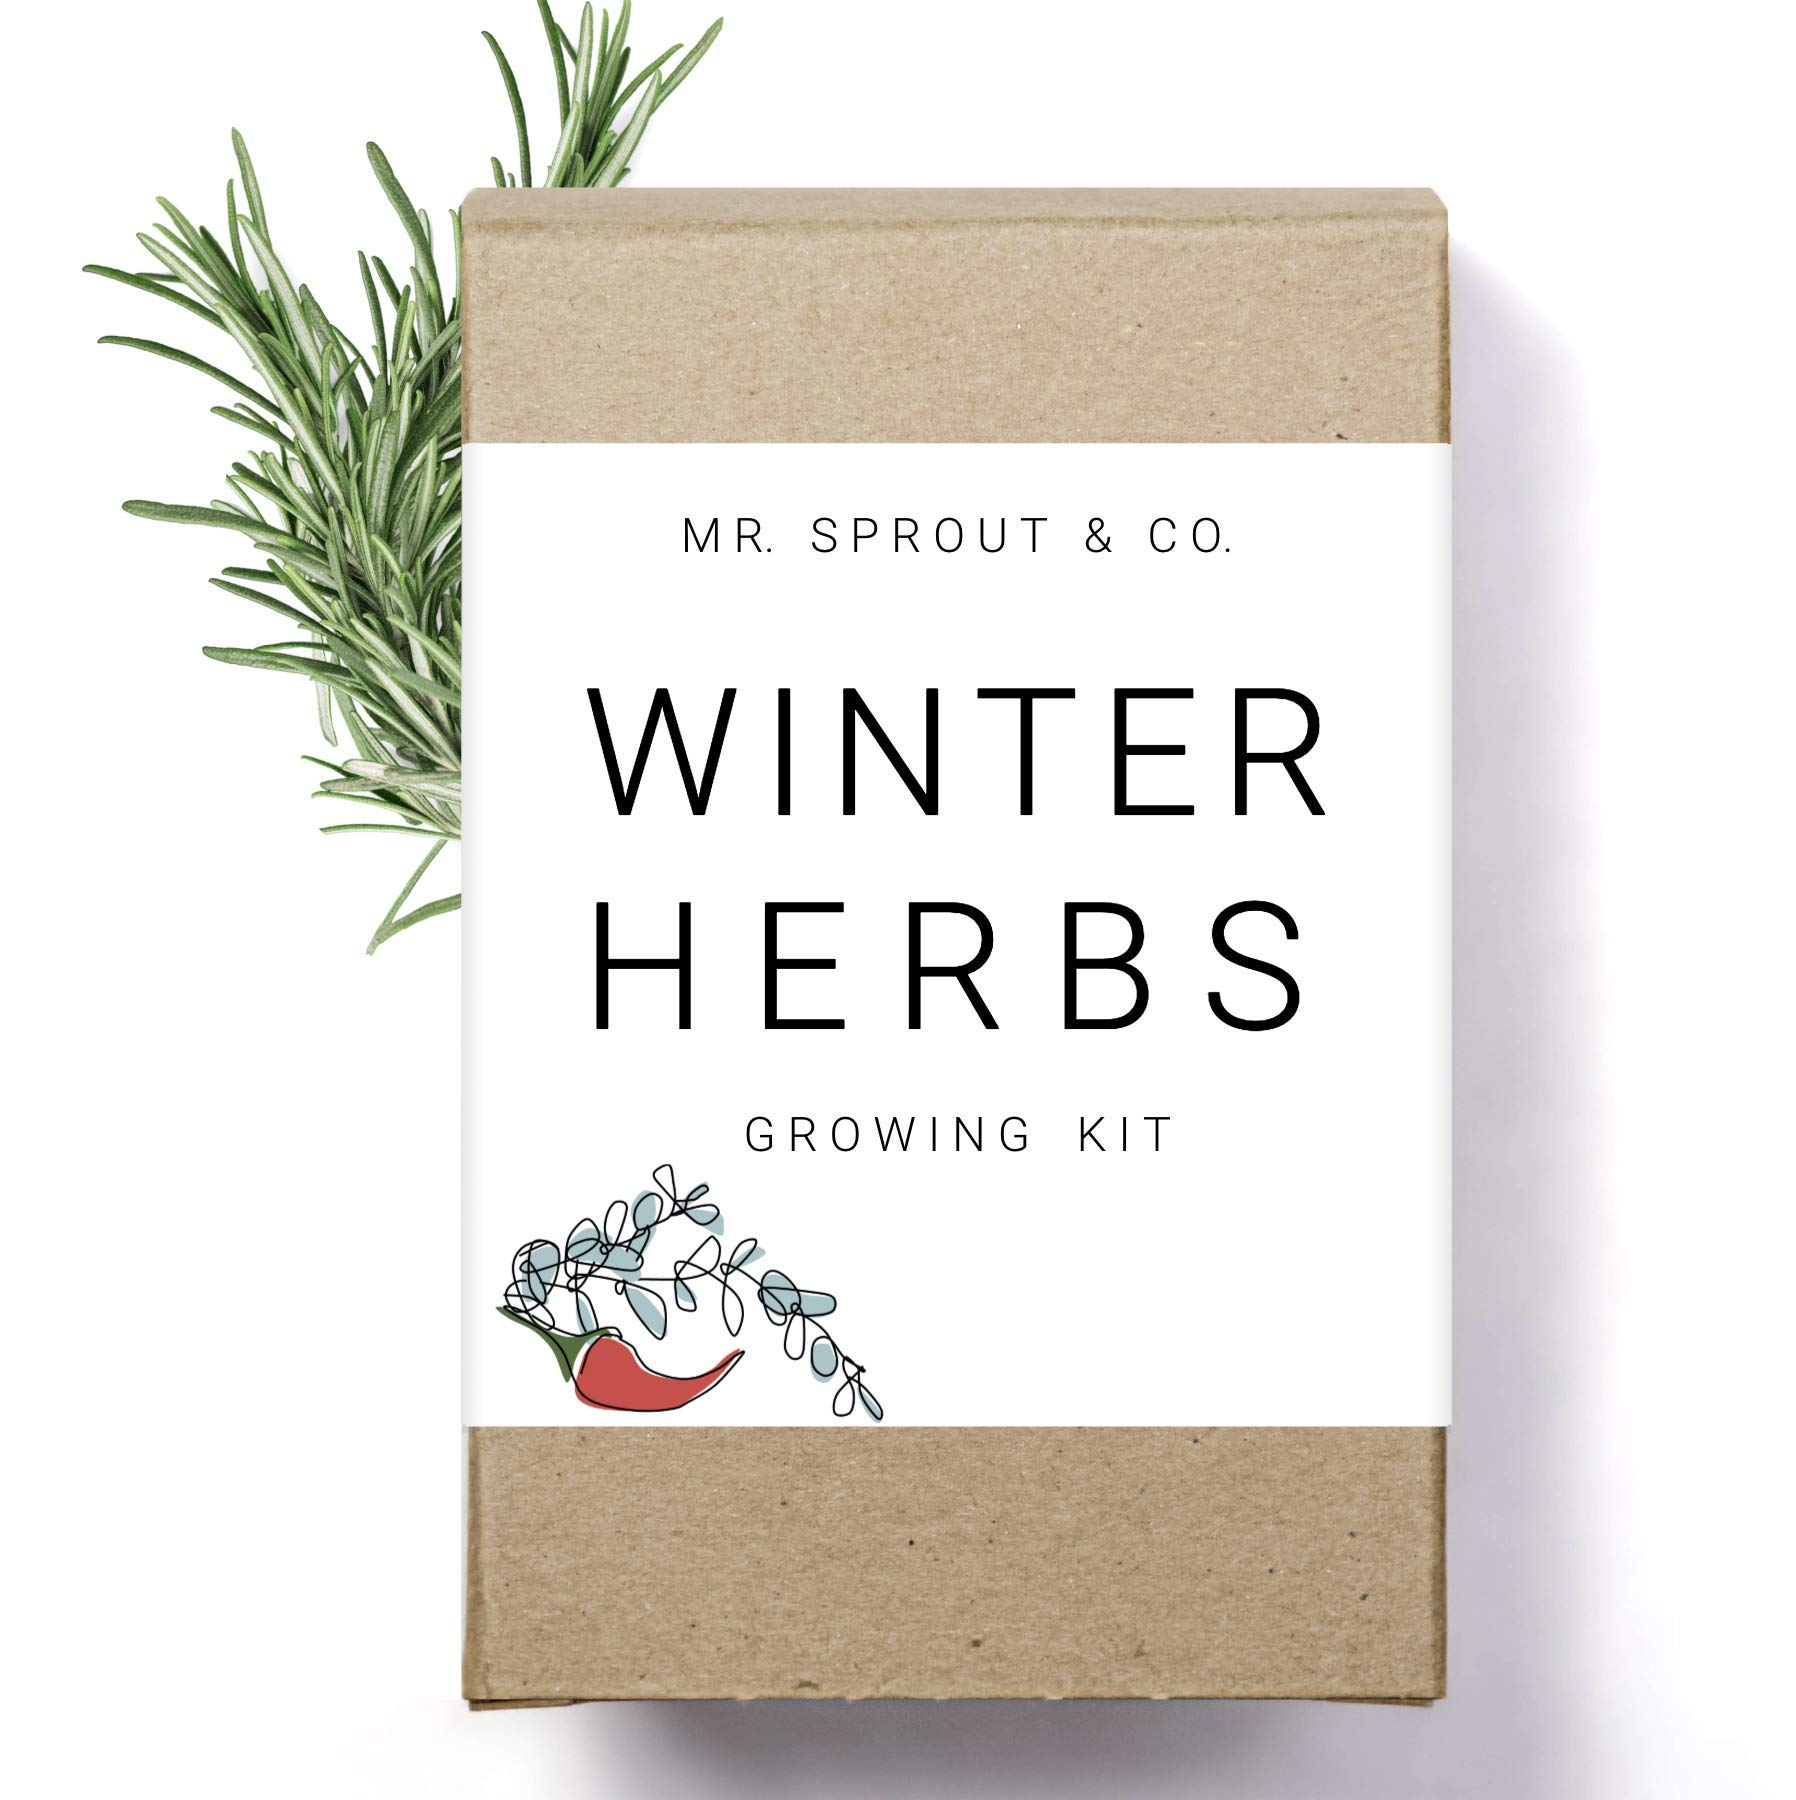 Amazon Com Winter Indoor Garden Kit Herb Garden Seed Starter Kit For Gardening Indoors Plant Grow Kit With Sage Rosemary Seeds And Hot Pepper Seeds For Planting Growing Fresh